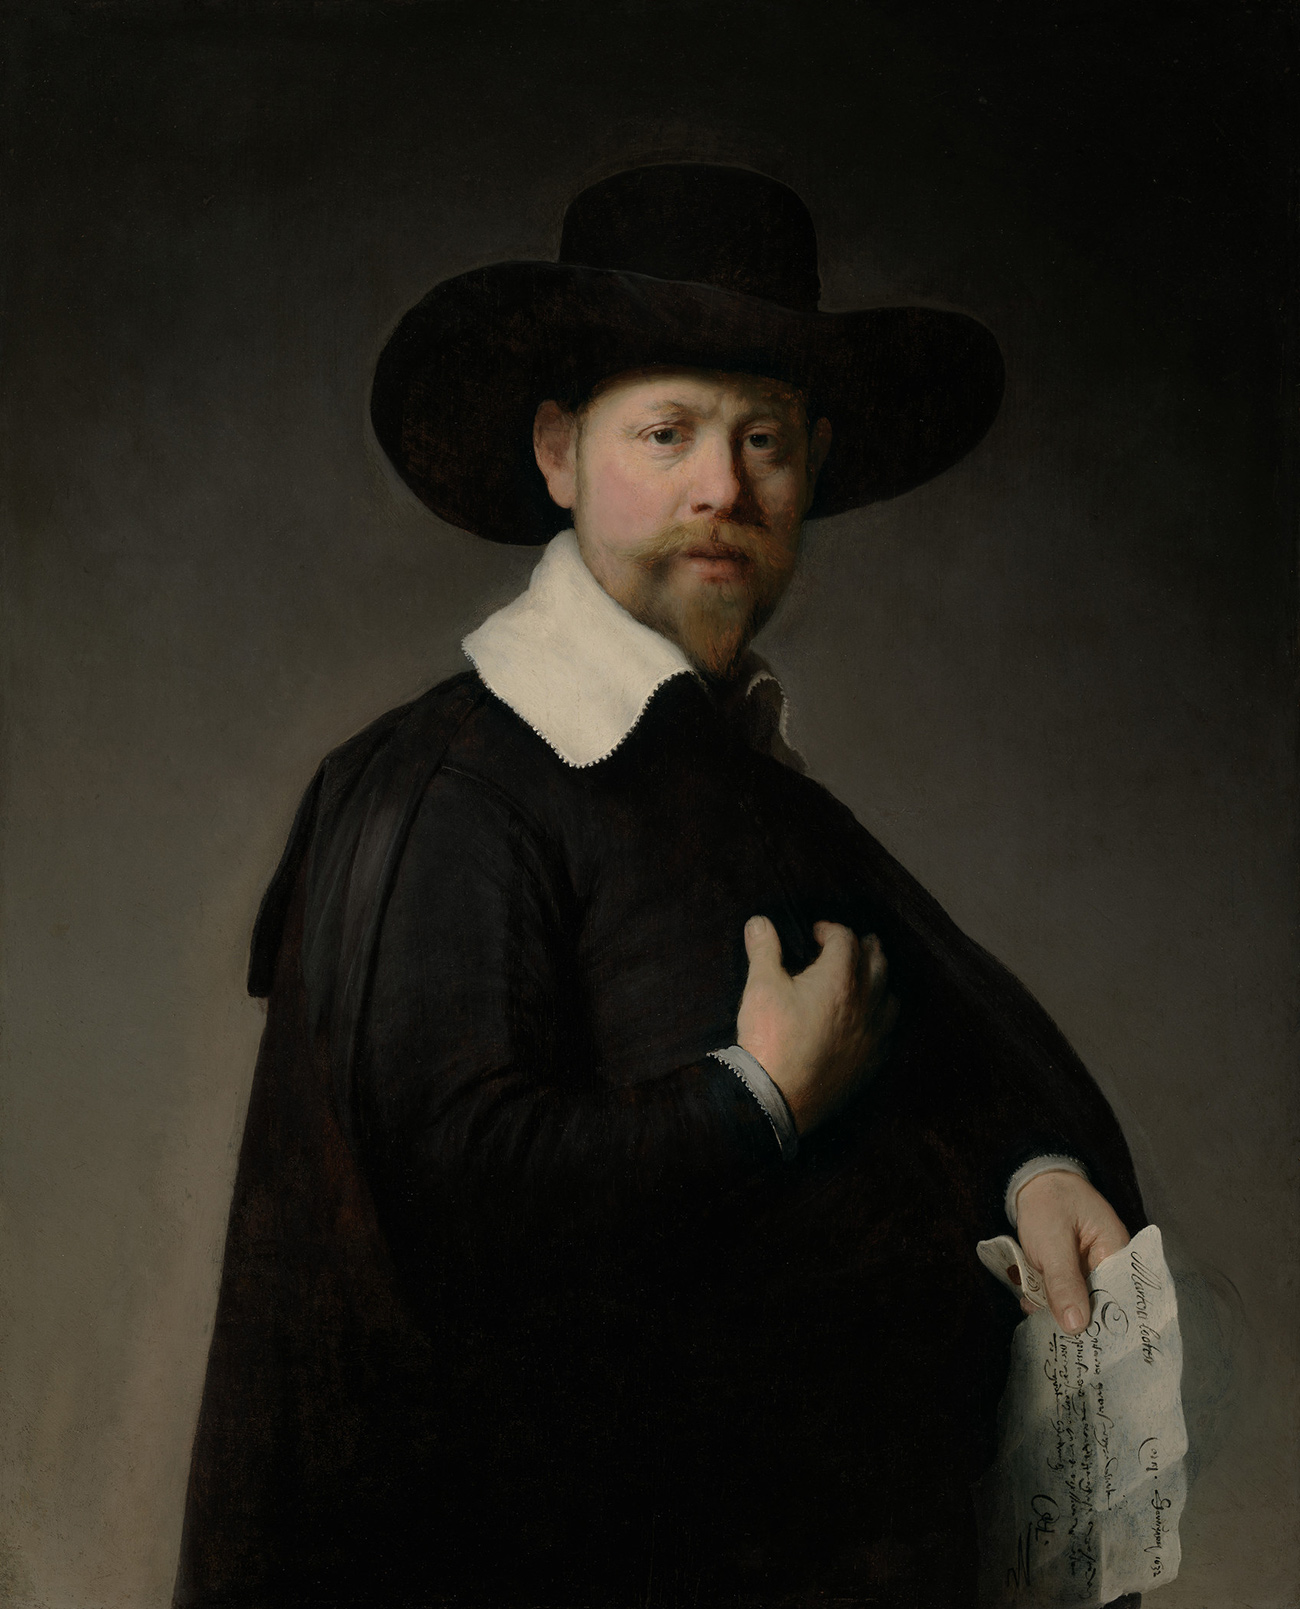 Somber portrait of a man with a pointy beard and small bushy mustache. He's wearing a wide-brimmed hat, wide white collar, and black cloak over a black jacket, and is holding a letter in his left hand.